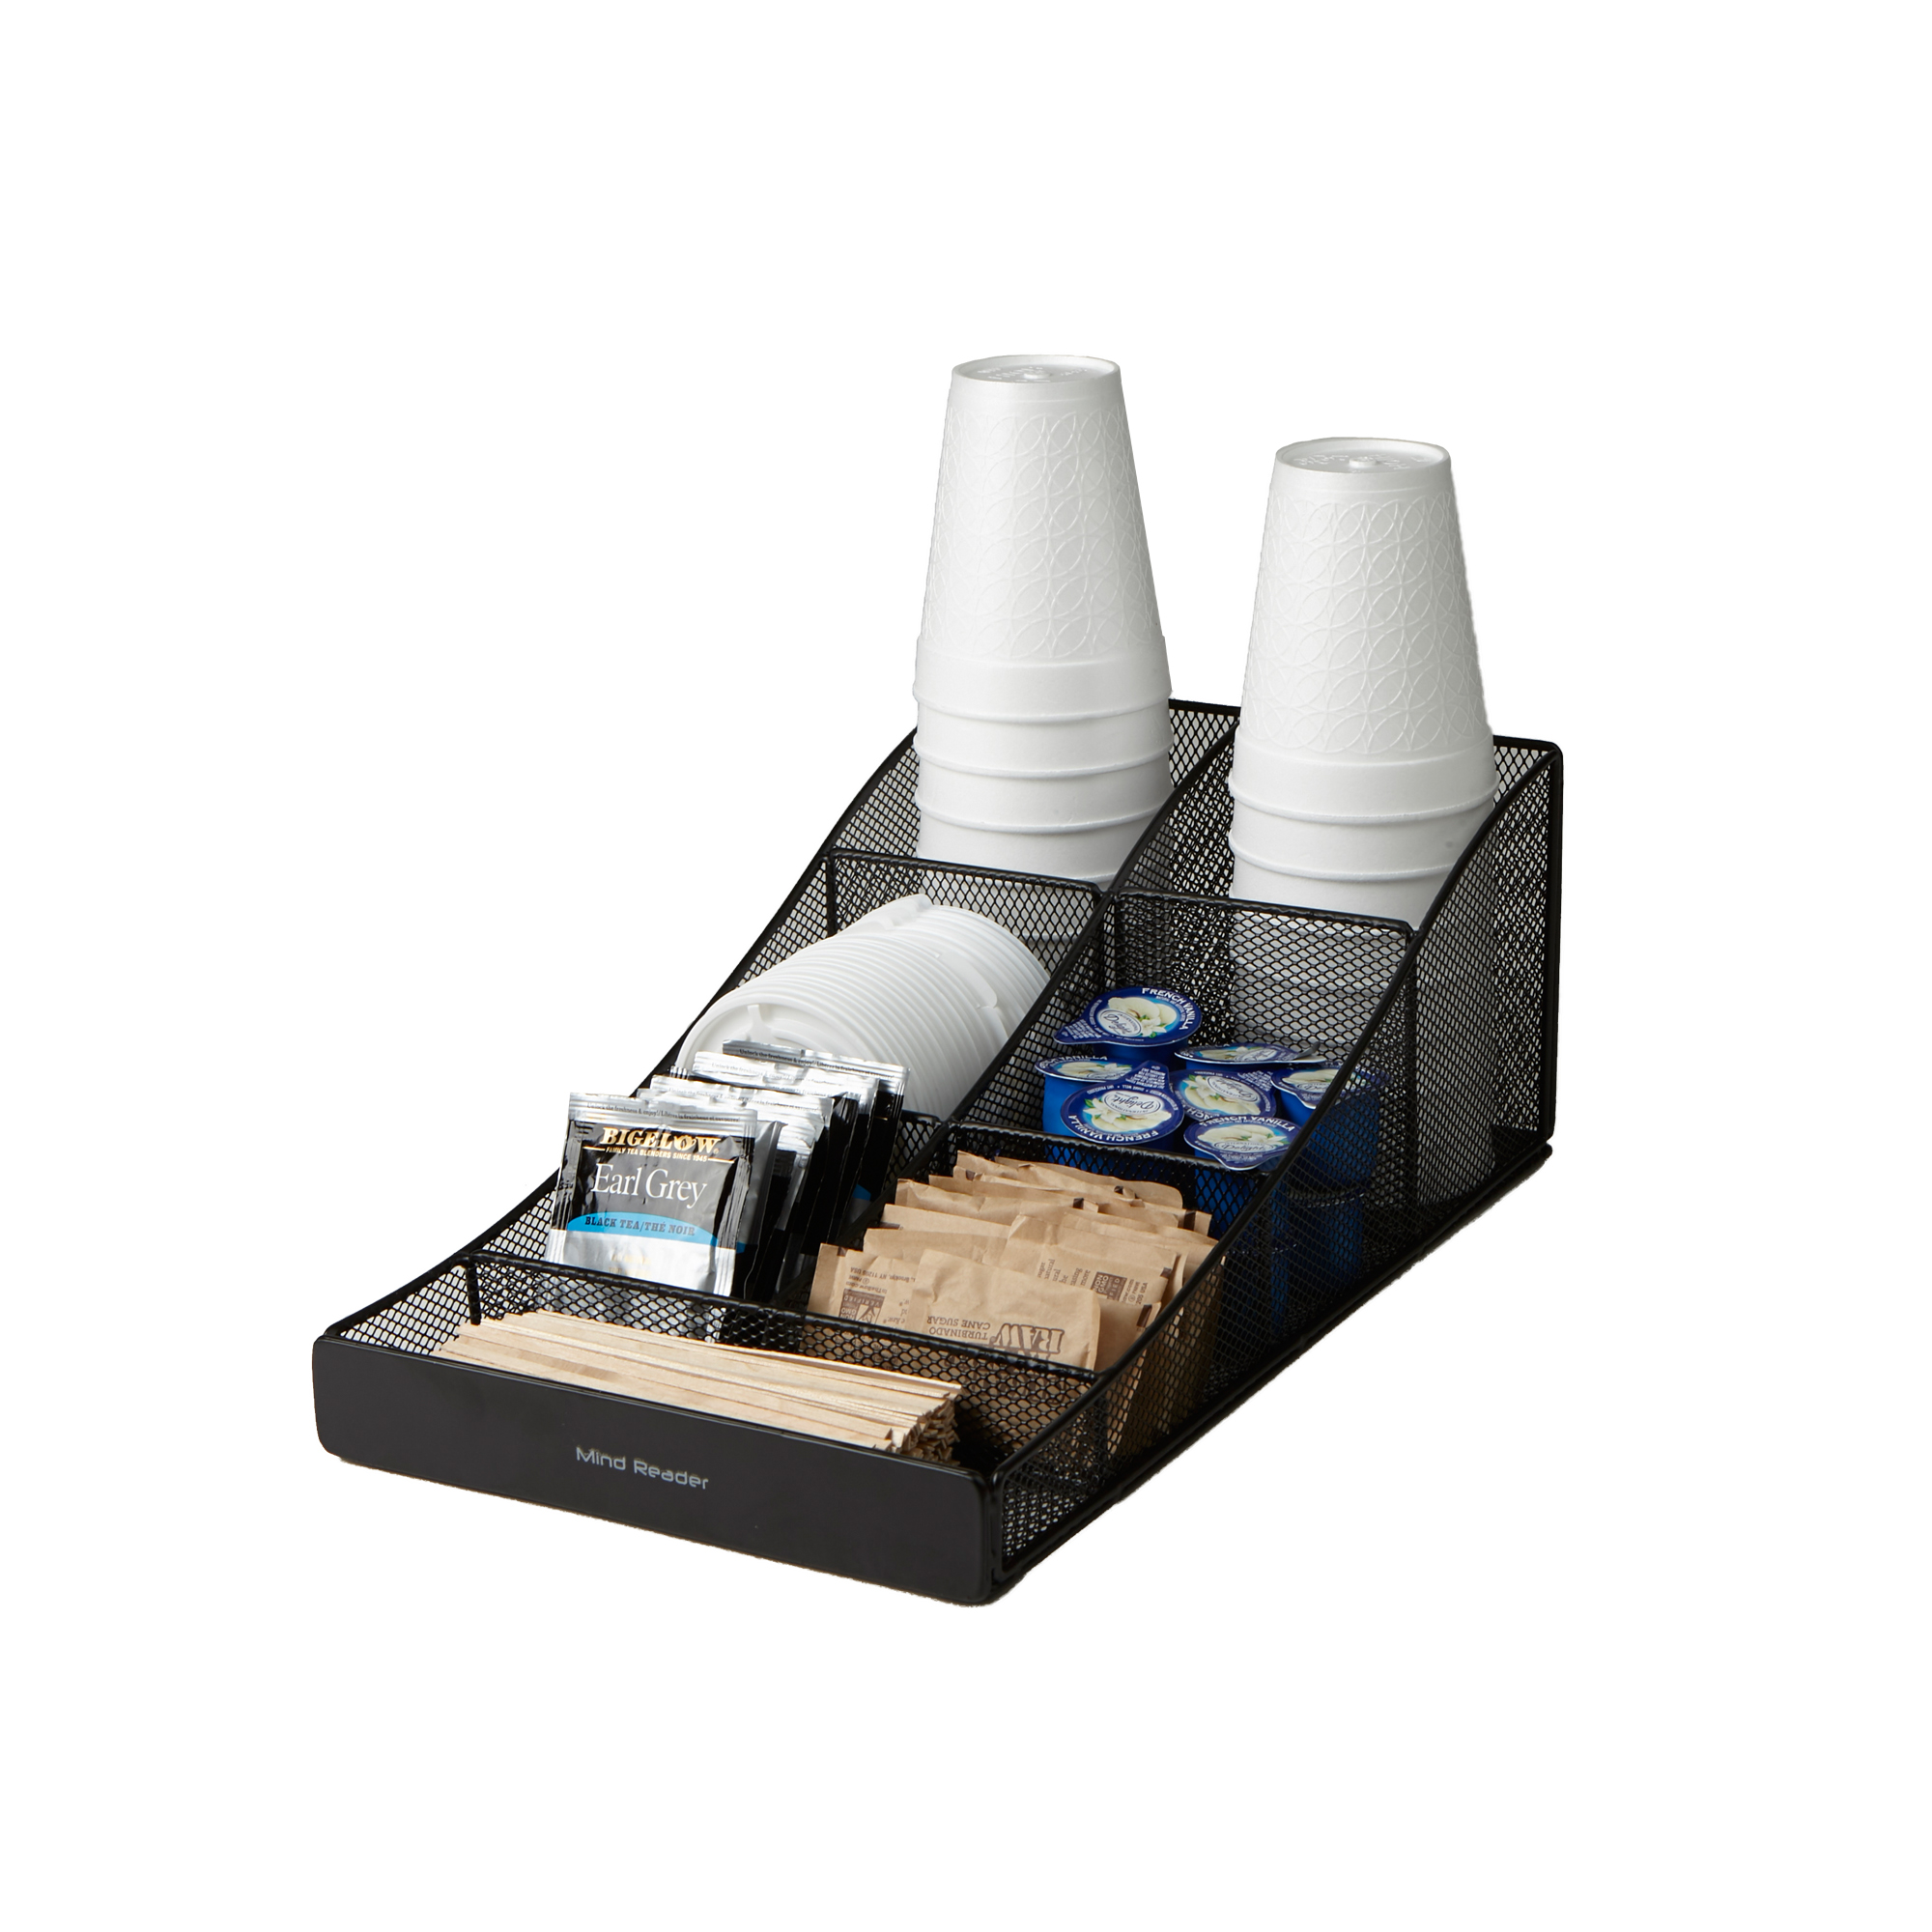 Mind Reader ' Trove' 7 Compartment Tea/Coffee Condiment Organizer, Black Metal Mesh